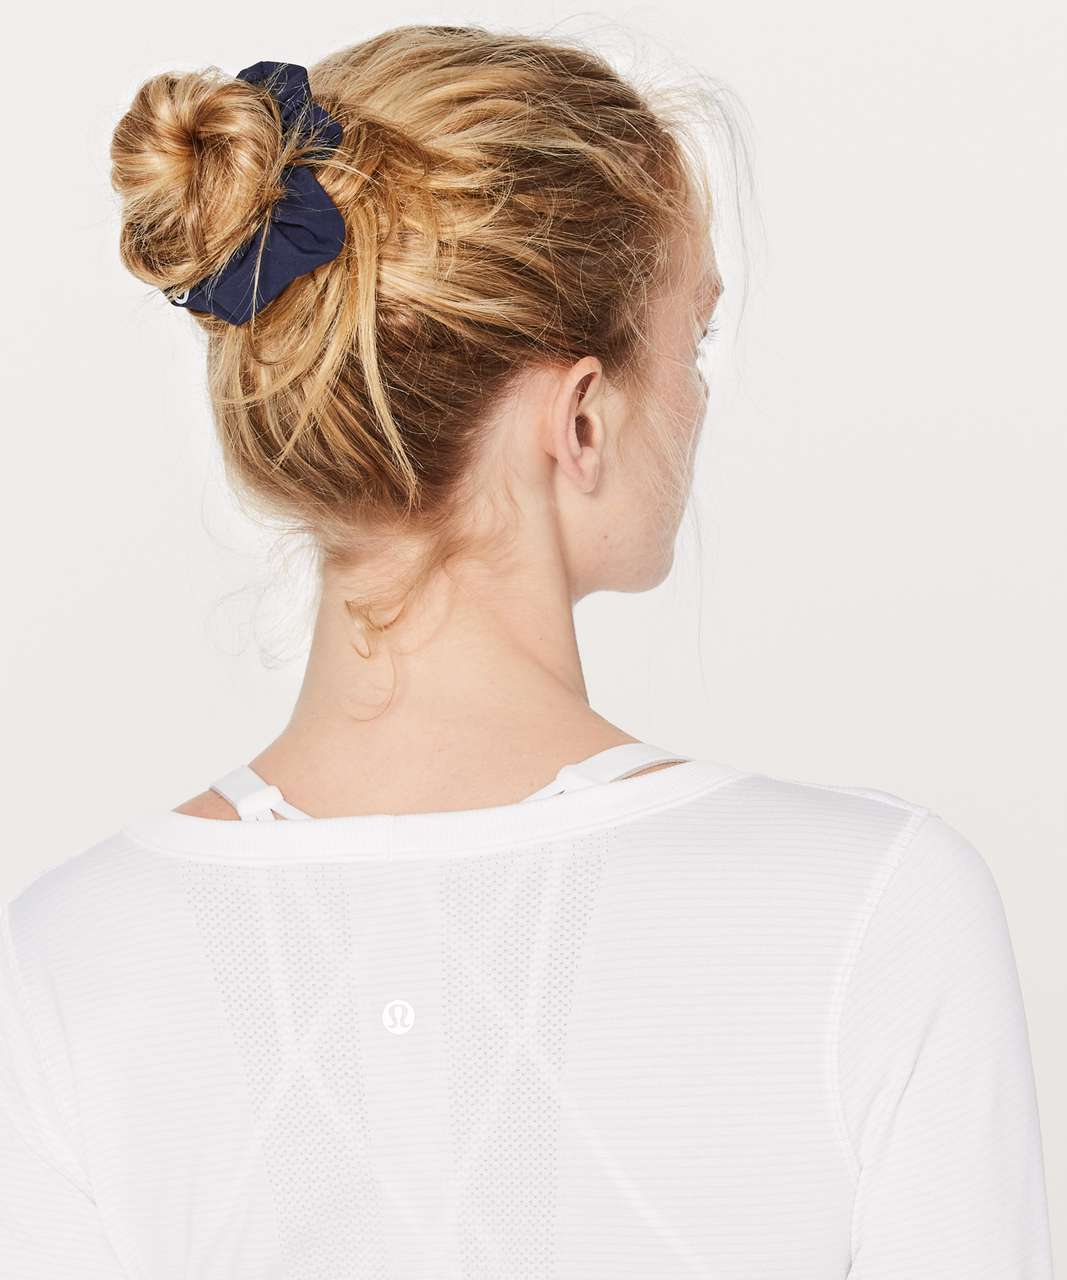 Lululemon Uplifting Scrunchie - Deep Navy